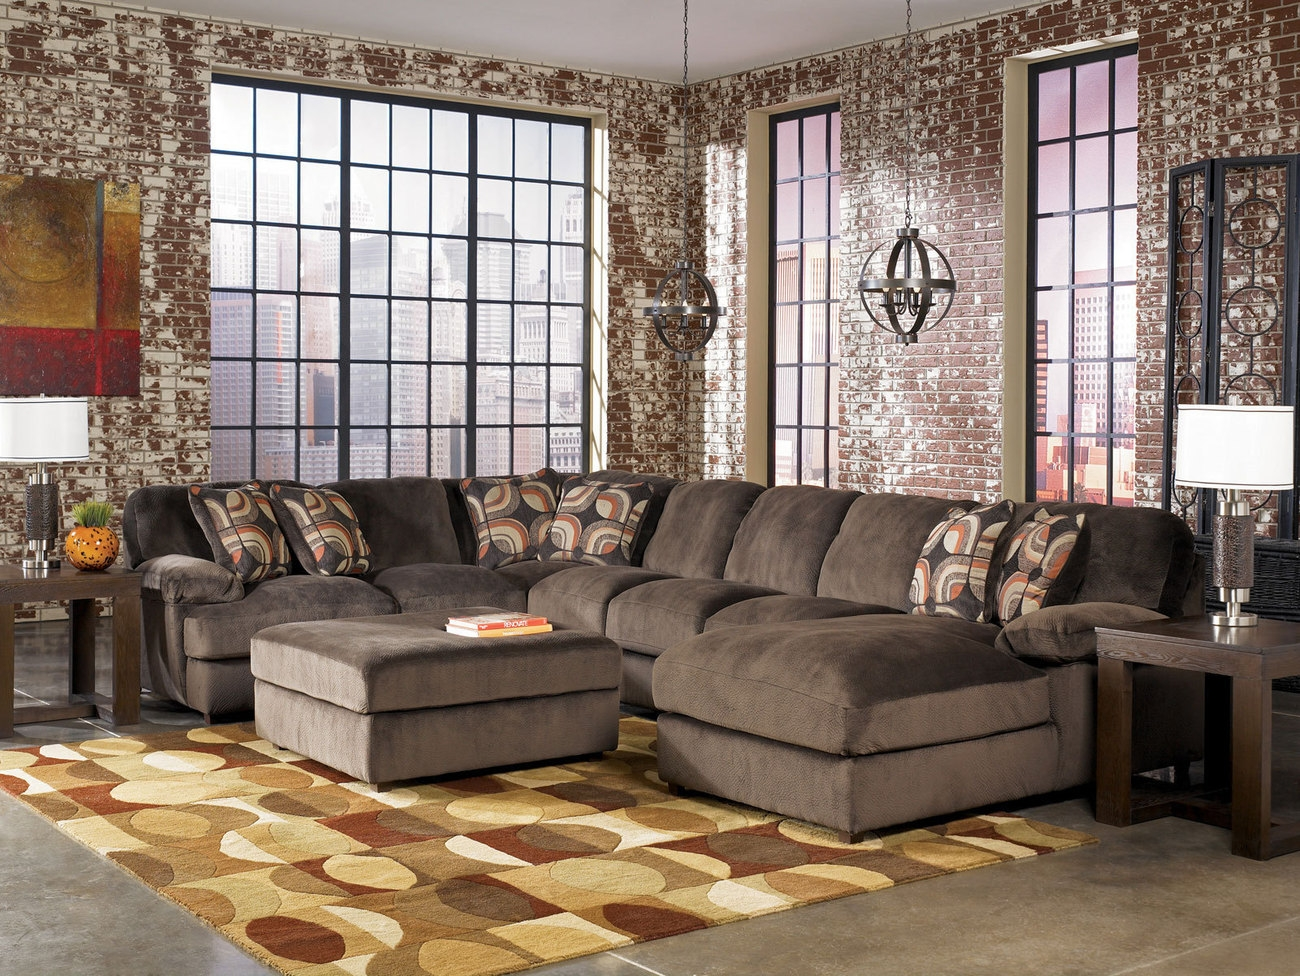 Popular Plush Sectional Sofas 26 With Additional Champion Pertaining To Champion Sectional Sofa (#9 of 12)